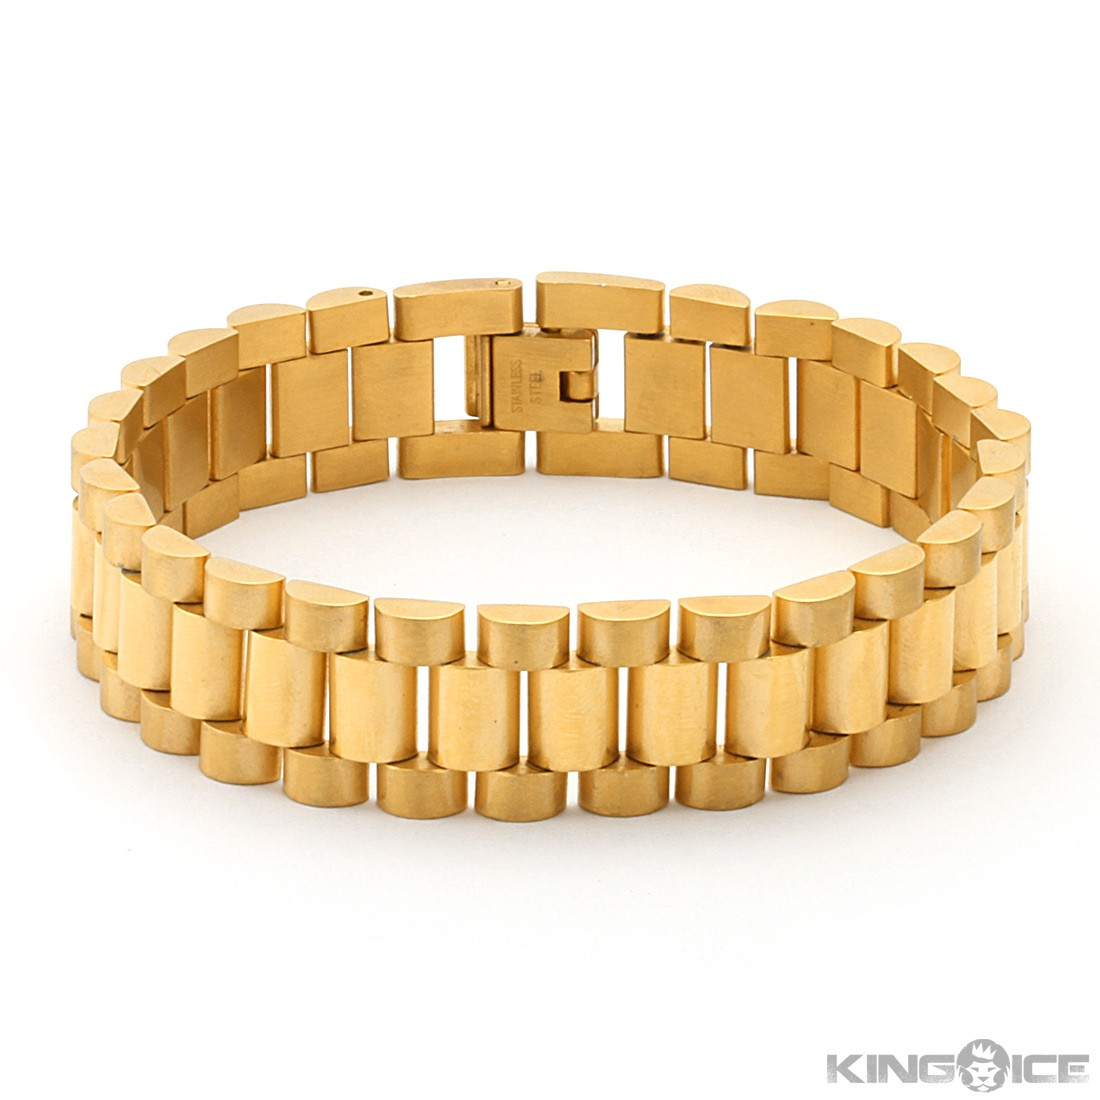 Gold Rolex Watch Steel Bracelet | Rolex Jewelry | Urban Style Rolex Bracelet